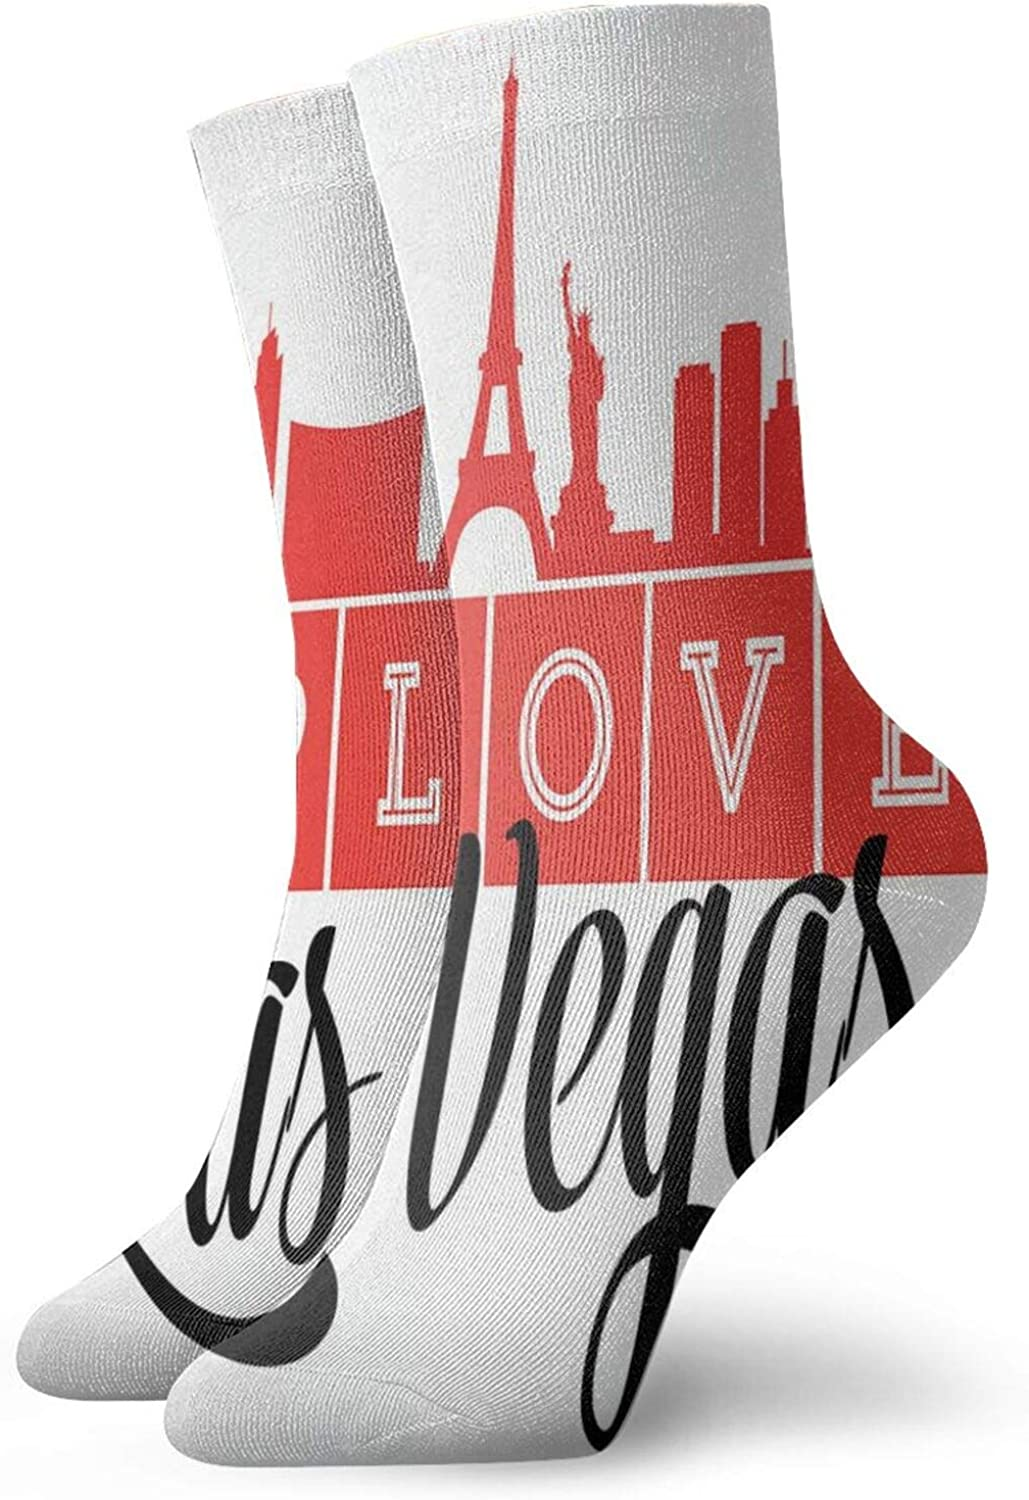 Compression High Socks-I Love Las Vegas Quotation With Silhouette Style Landmarks Pattern Best for Running,Athletic,Hiking,Travel,Flight